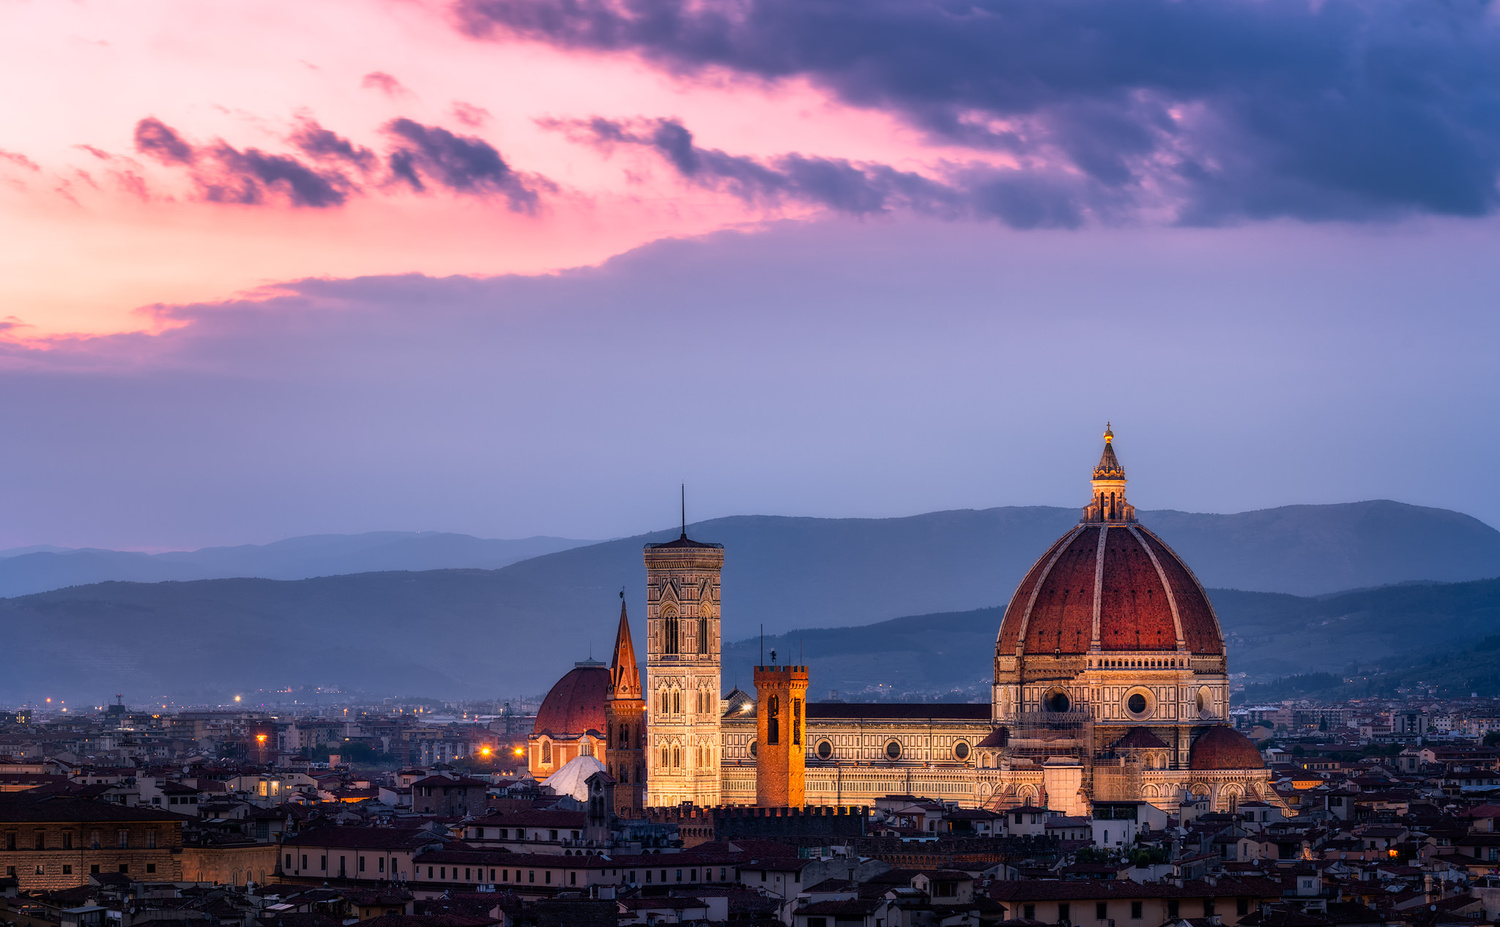 Florence Cathedral with Brunelleschi Duomo | Florence, Italy by Nico Trinkhaus